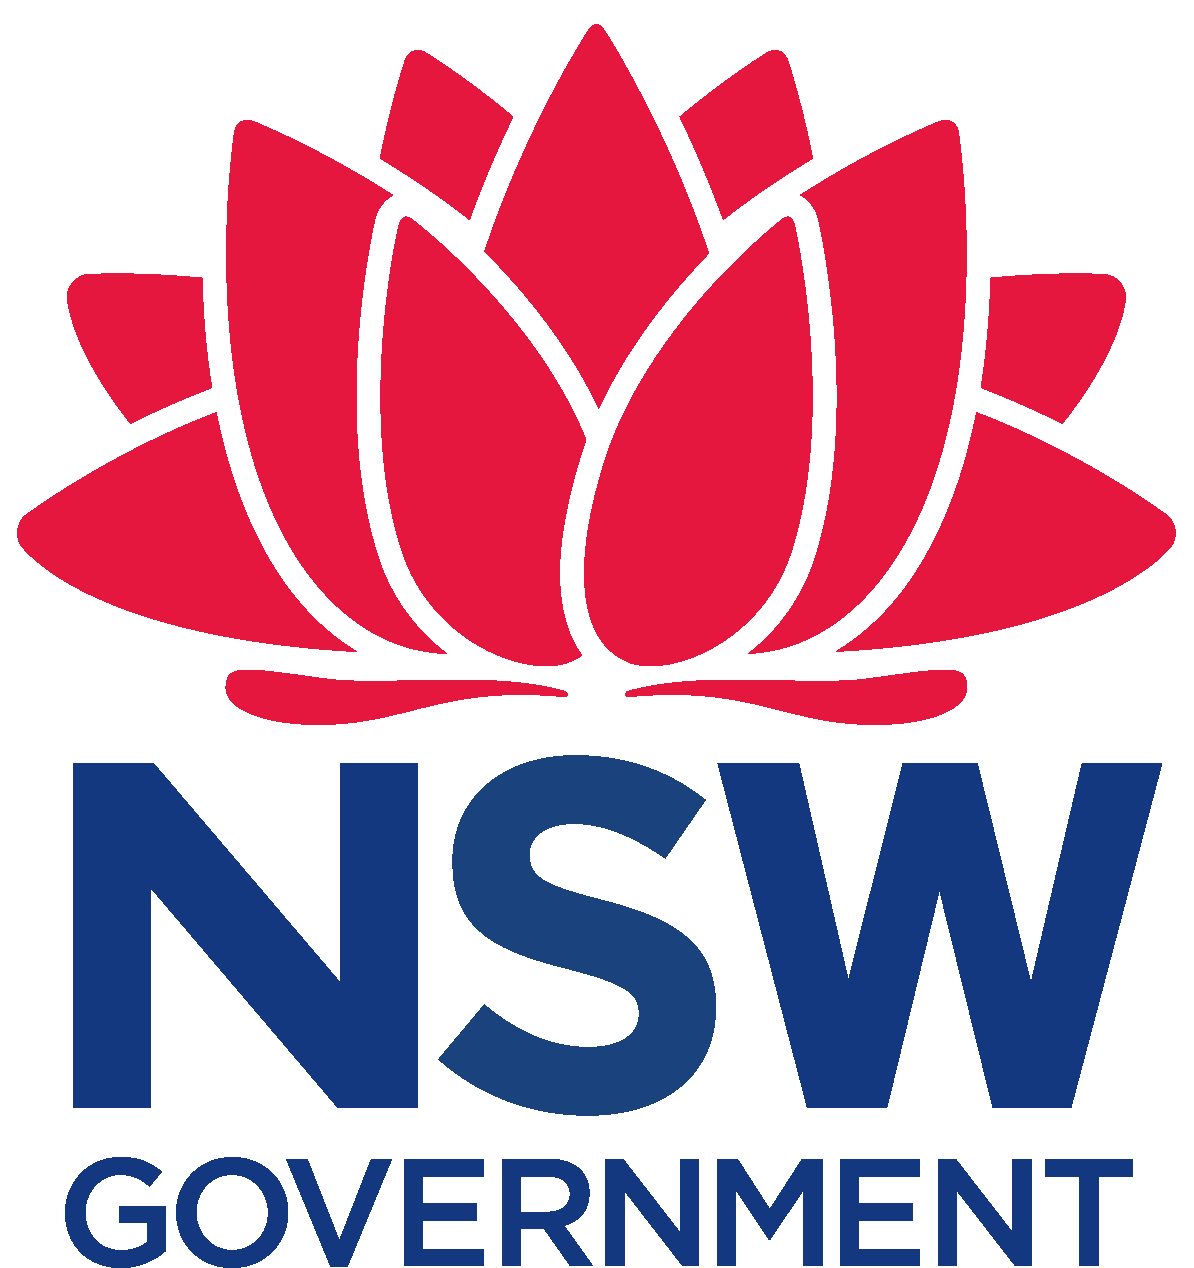 waratah-nsw-government-two-colour-png-logo